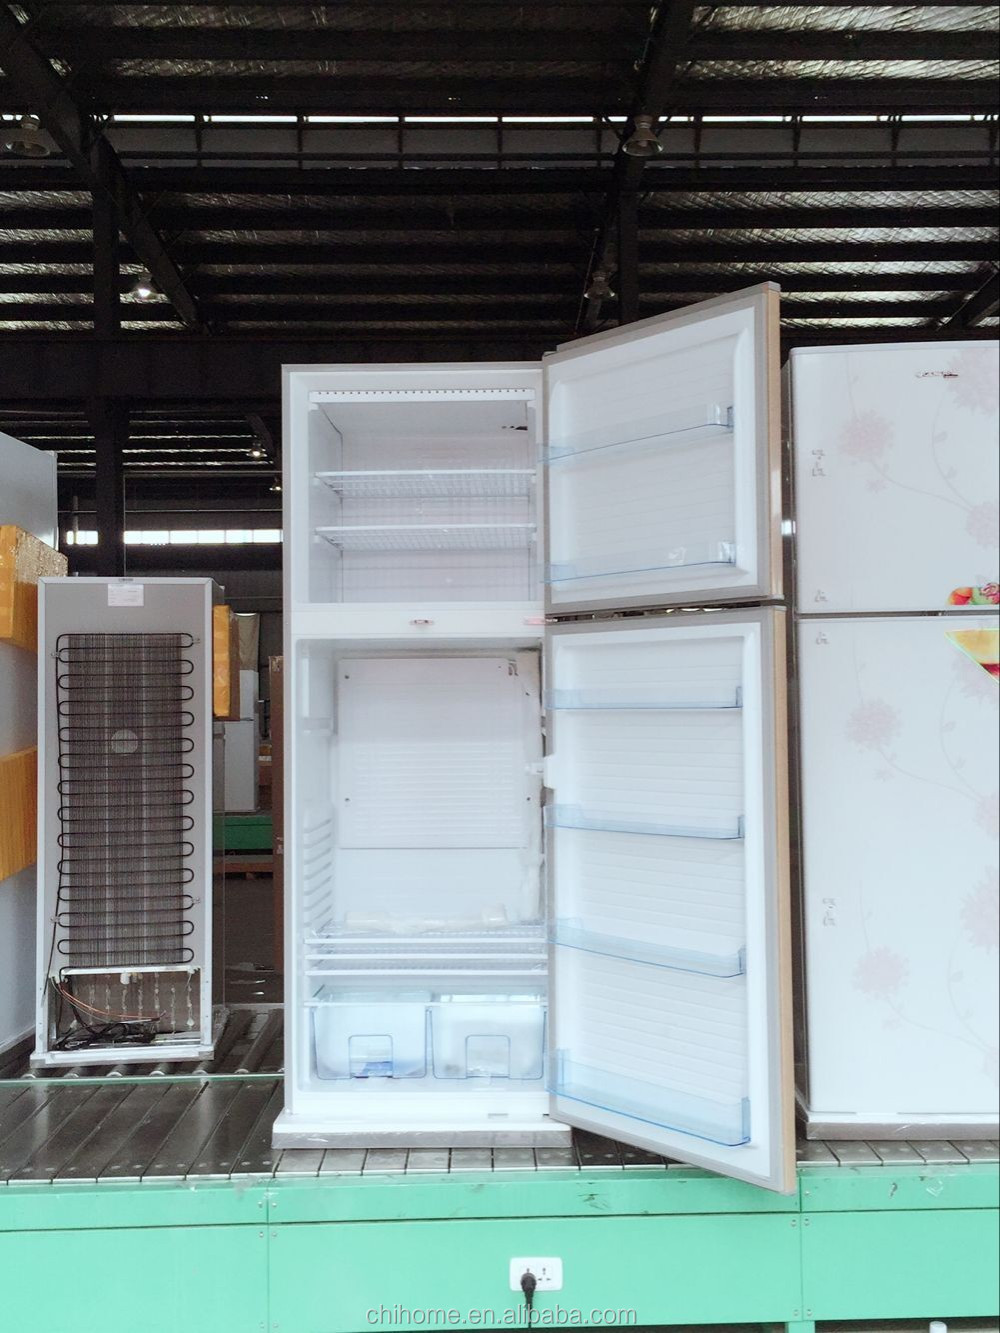 BCD-490C 490L fridge refrigerator, with outside evaporator, gas used in compressor of refrigerator